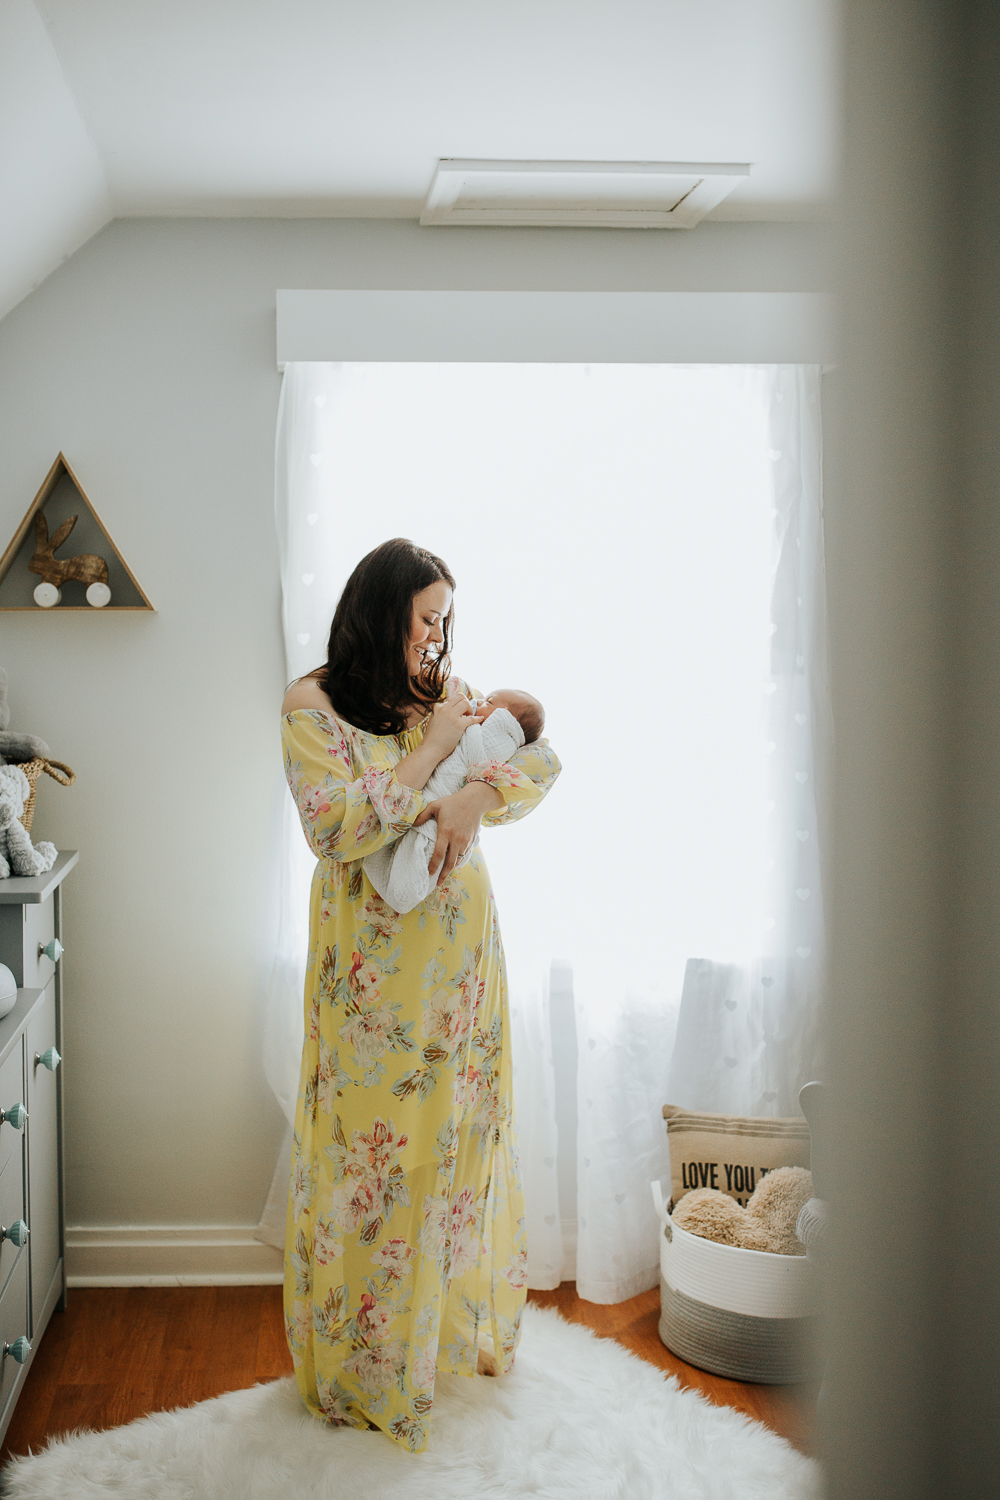 new mom standing in nursery in front of window rocking 3 week old baby boy in white swaddle to sleep - Stouffville Lifestyle Photos